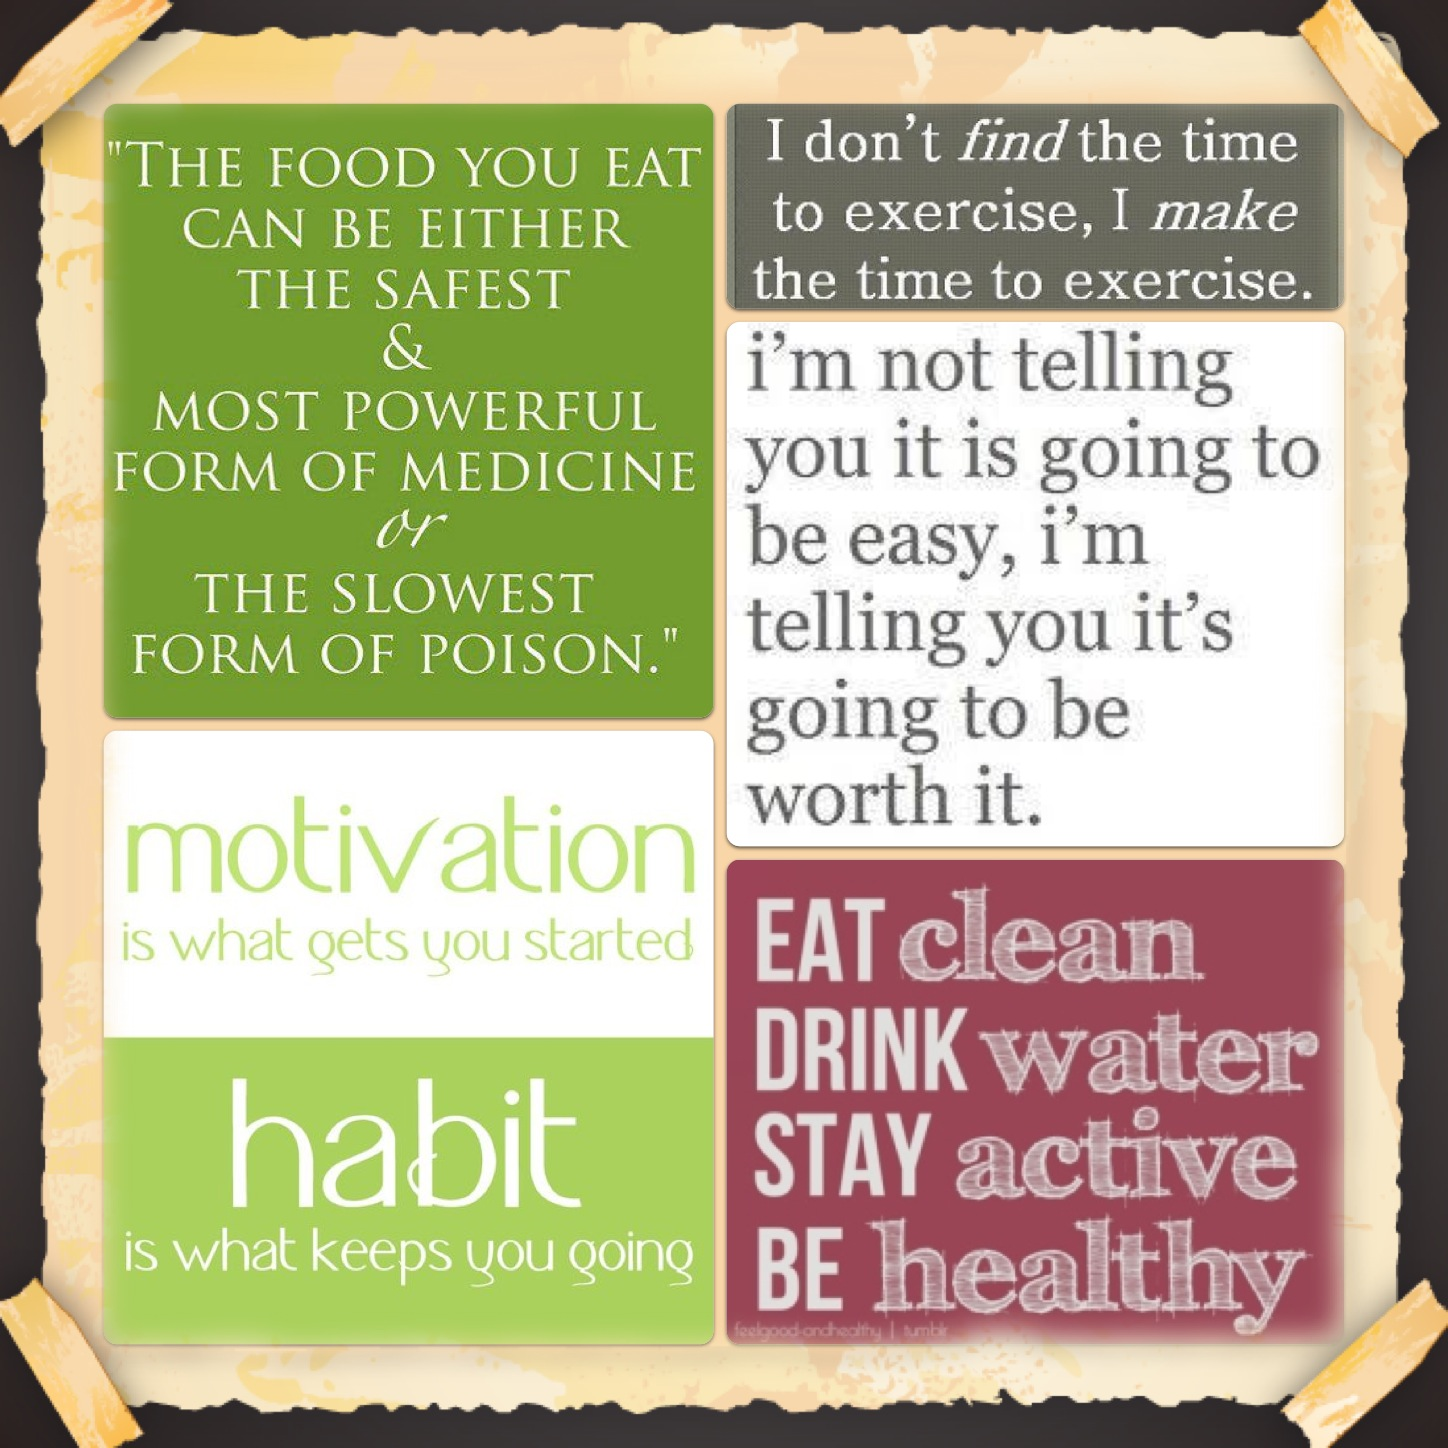 Motivational Quotes Healthy Eating: A Topnotch WordPress.com Site